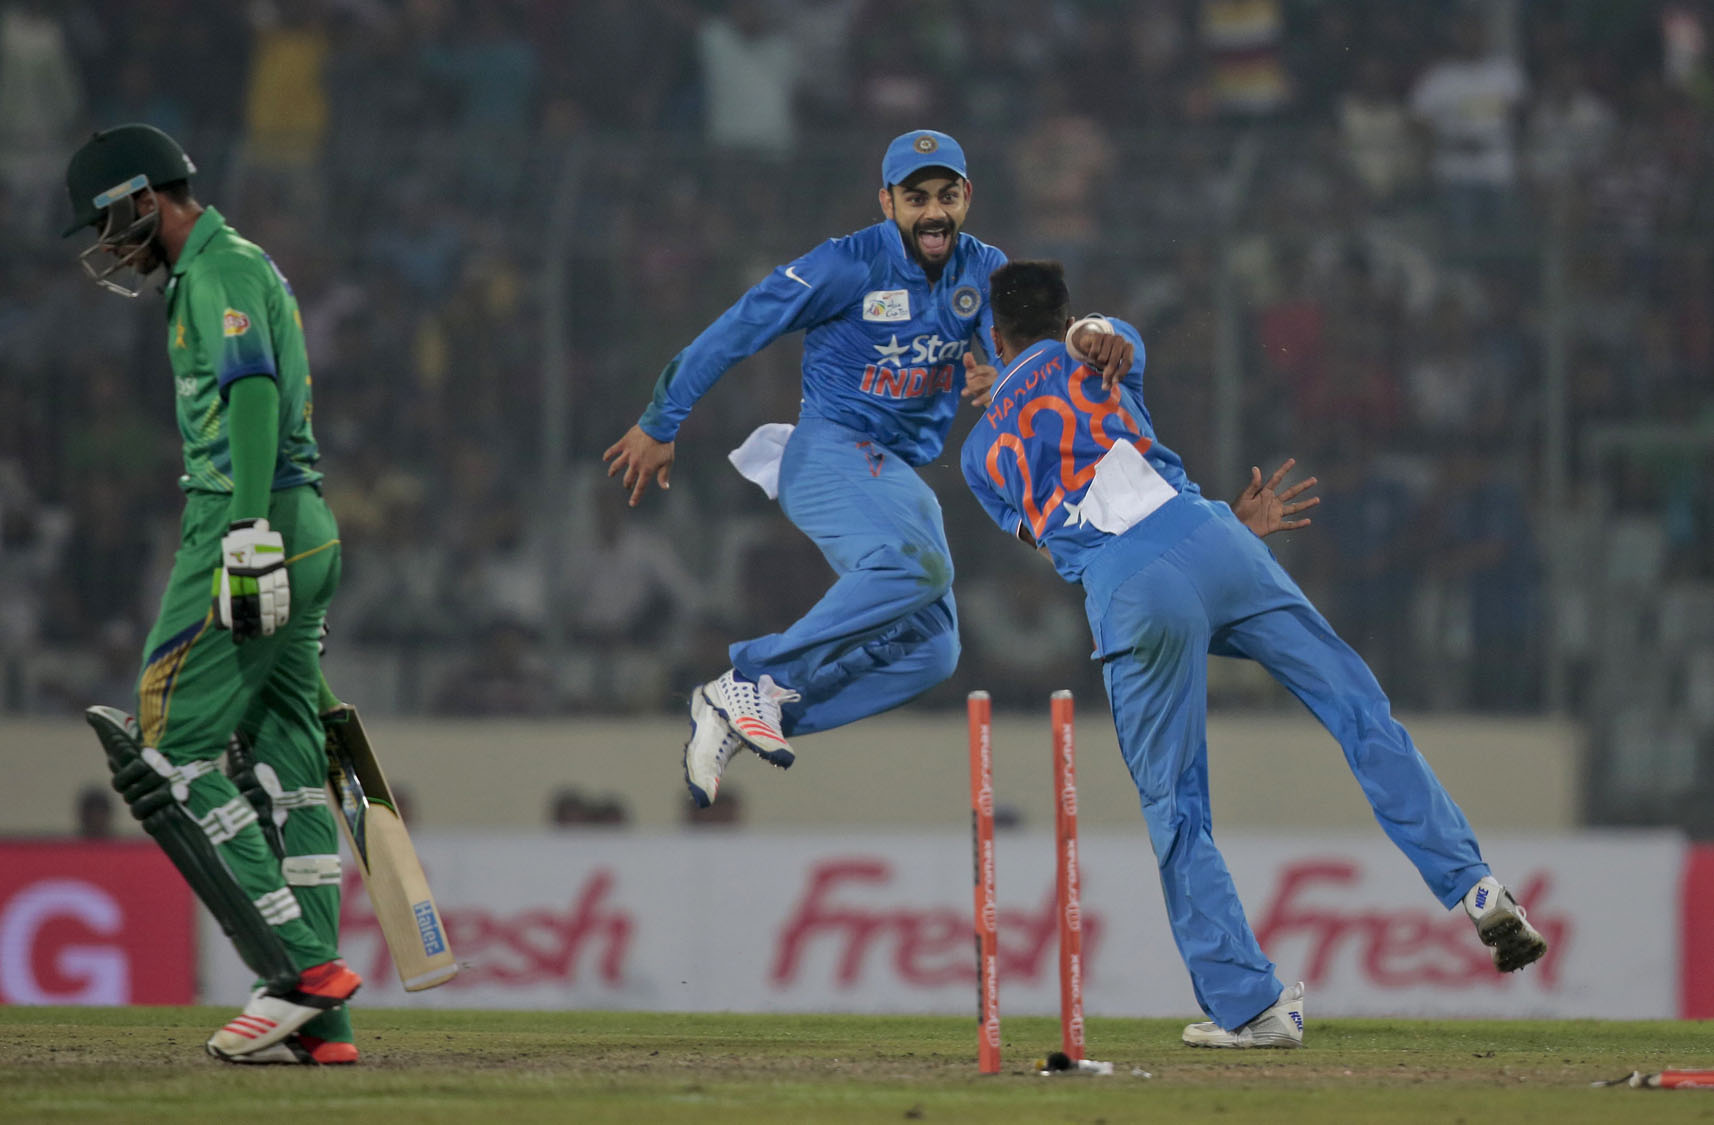 ... Twenty20 international cricket match in Dhaka, Bangladesh, Saturday